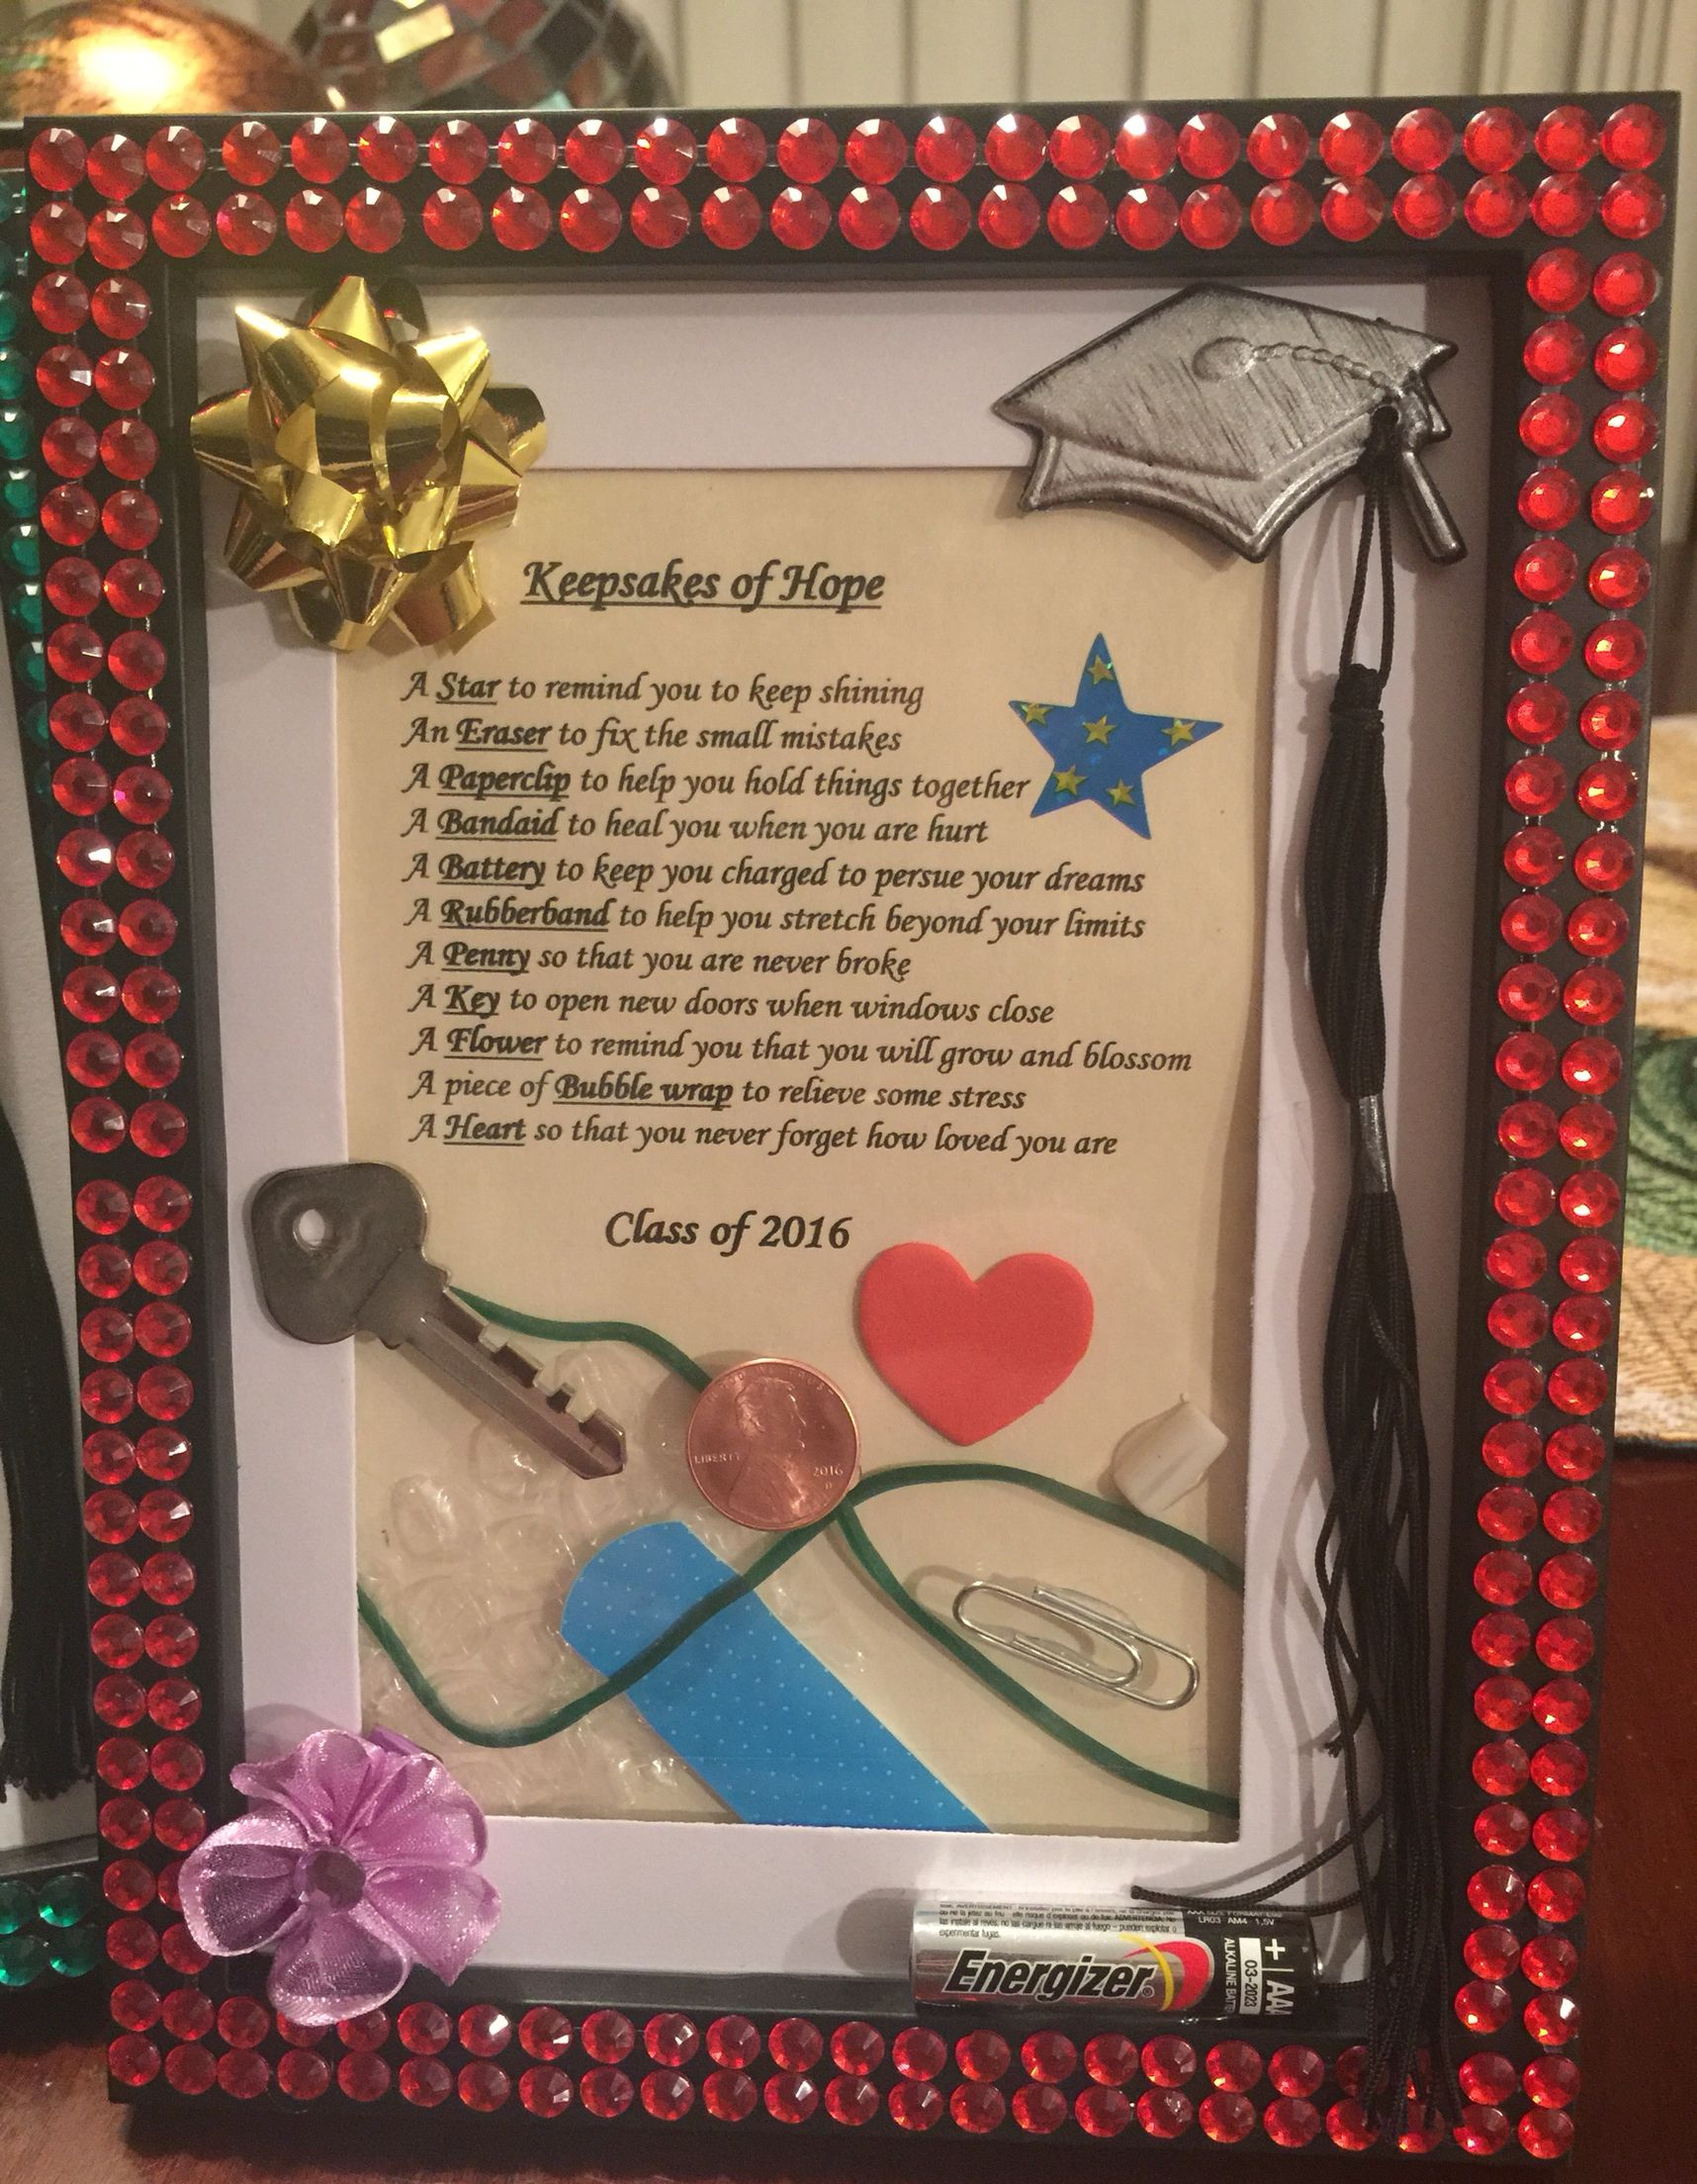 Scrapbook ideas moving away